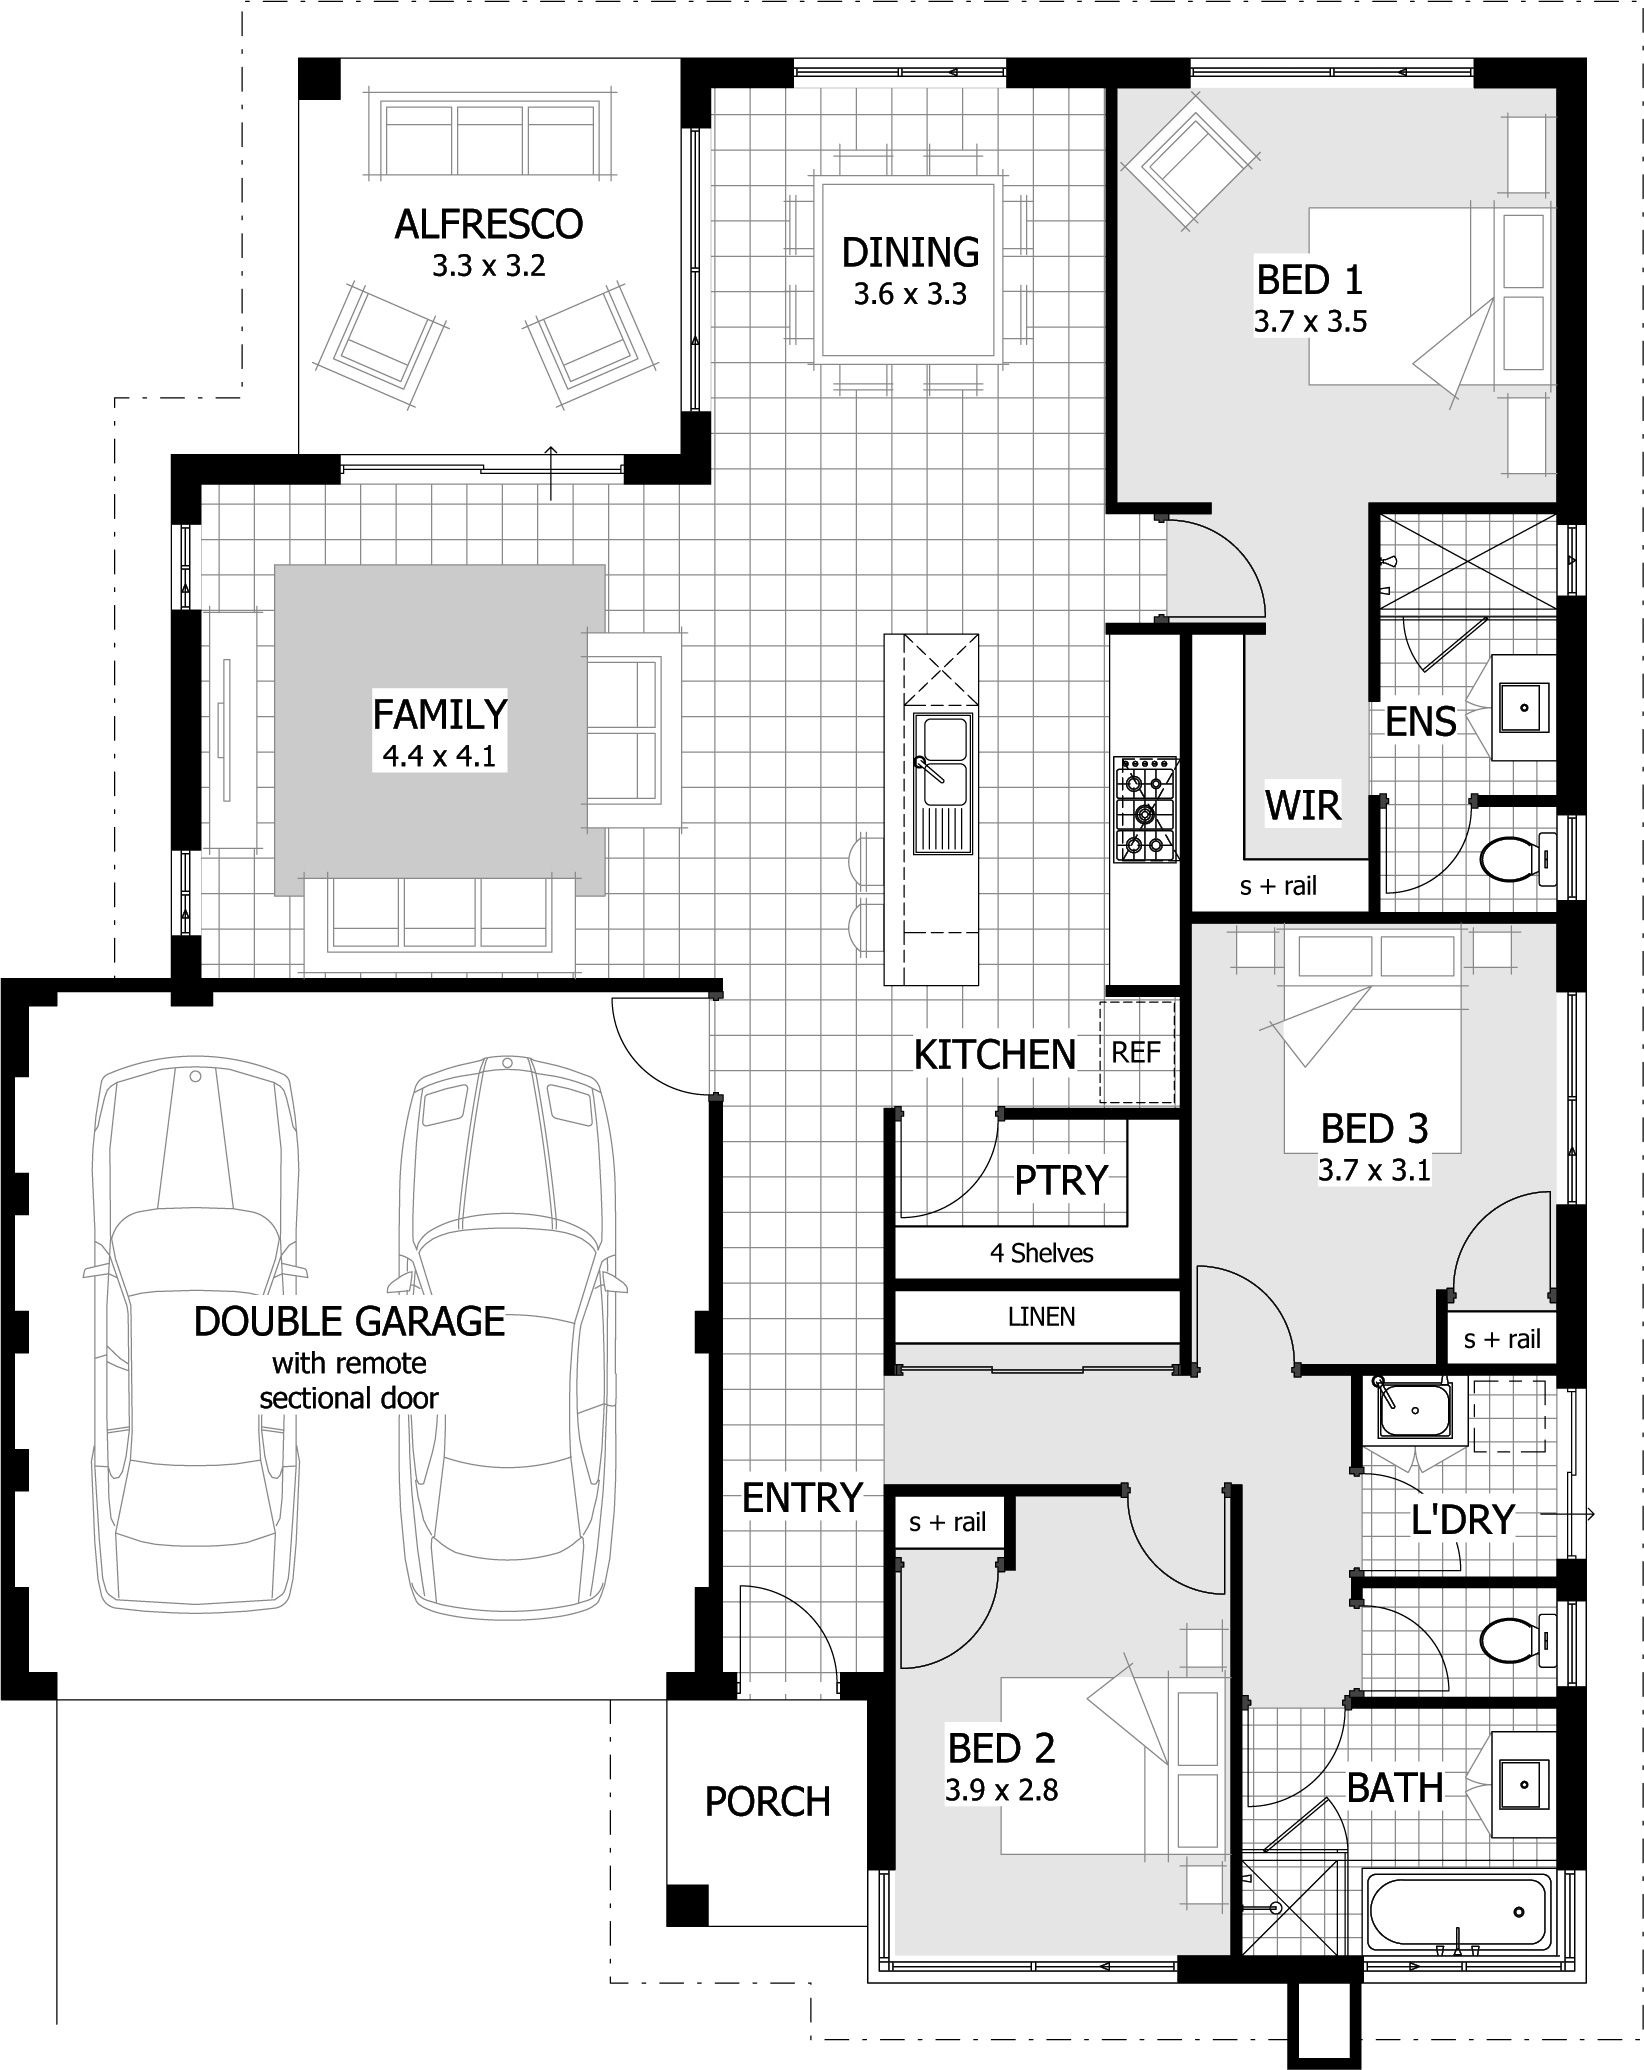 3 Bedroom Home Plans Lovely 3 Bedroom House Plans & Home Designs